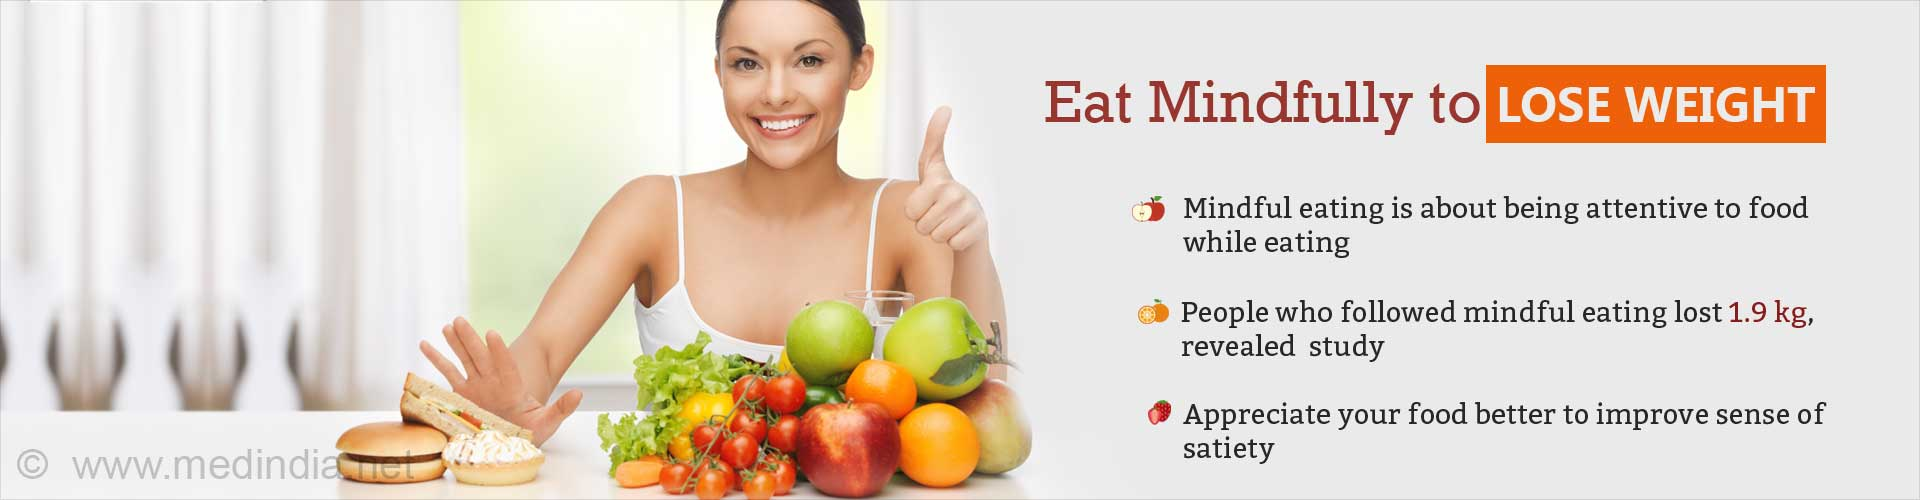 Eat mindfully to lose weight - Mindful eating is about being attention to food while eating - People who followed mindful eating lost. 1.9kg revealed study - Appreciate your food better to improve sense of satiety